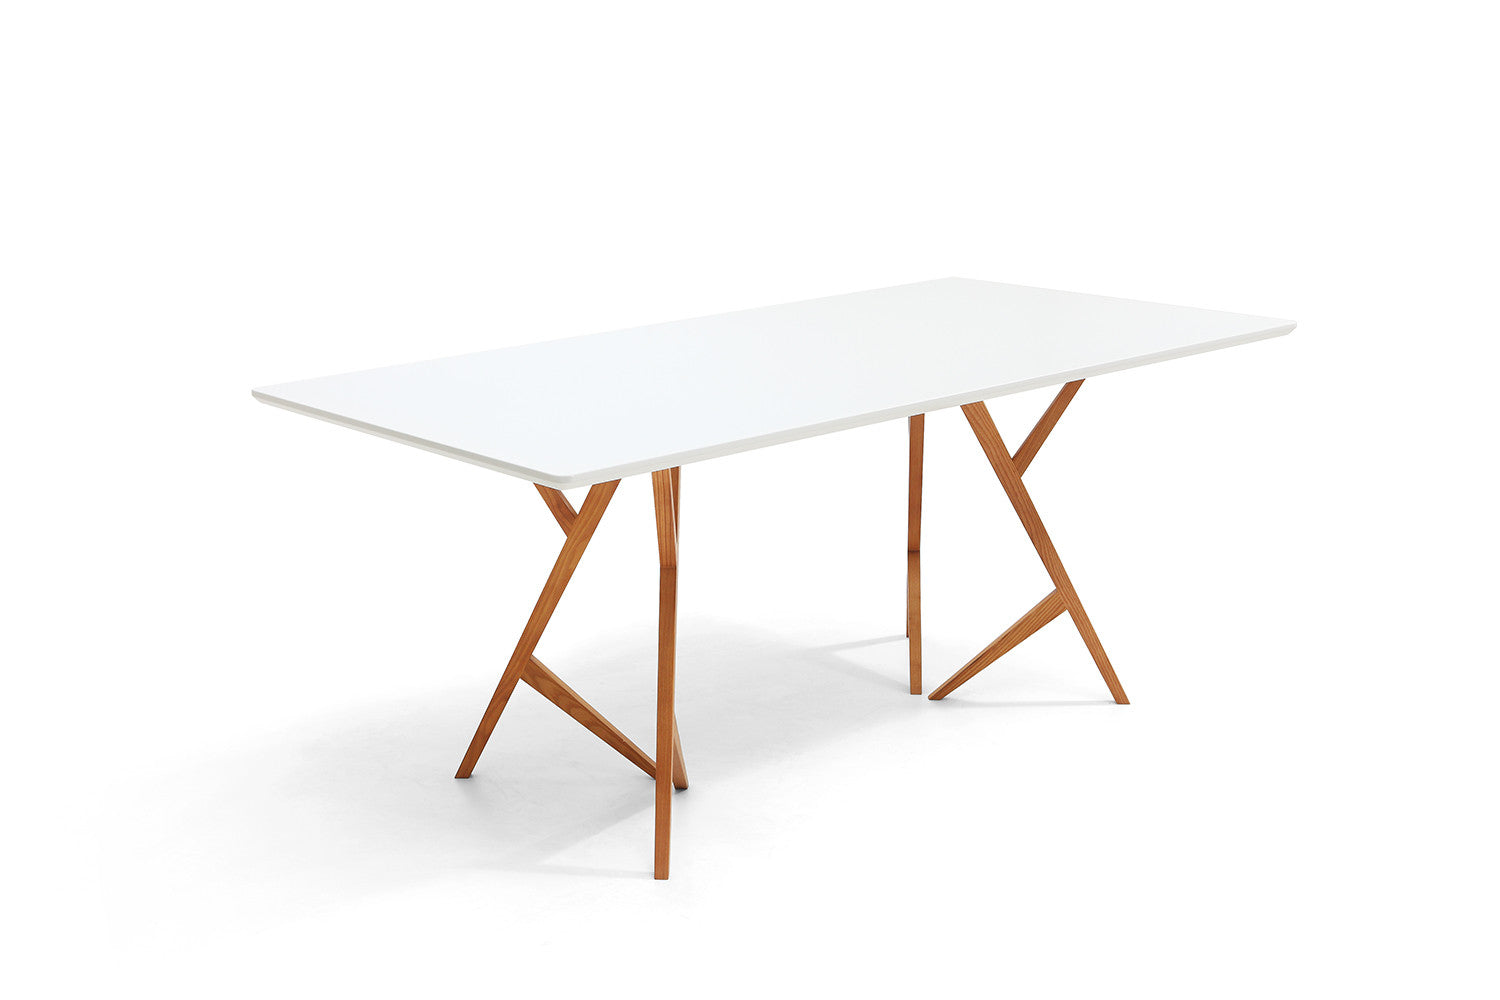 Table de salle manger design scandinave vispa dewarens for Table a manger design